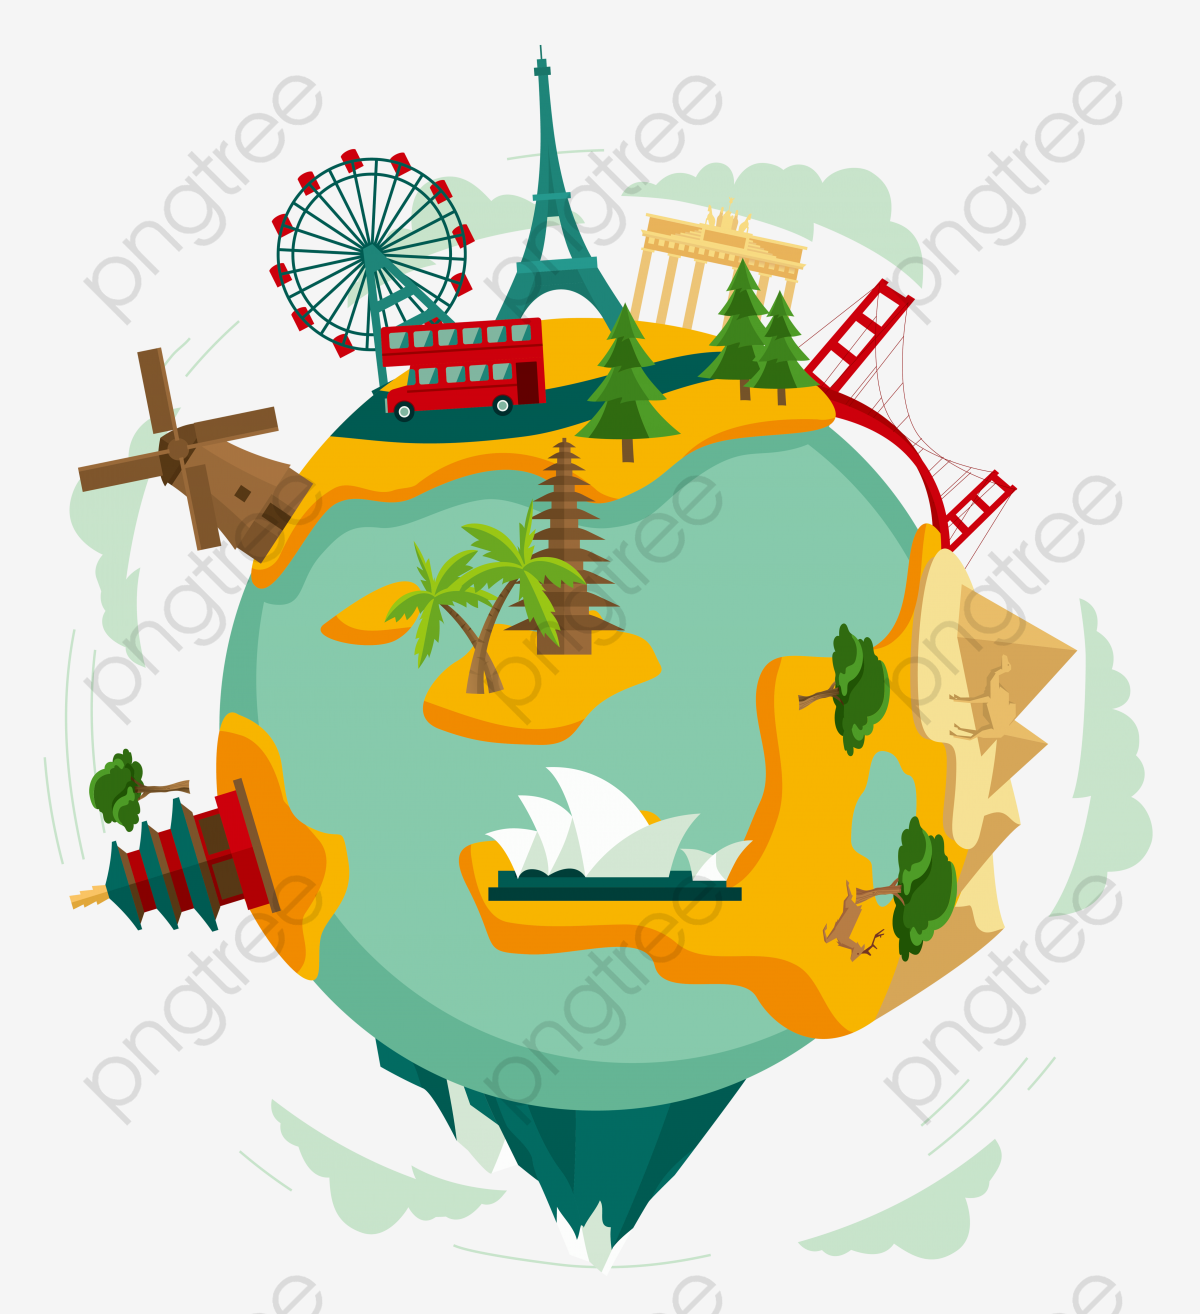 Exquisite Cartoon Planet Global Culture Decorative Pattern, Earth.